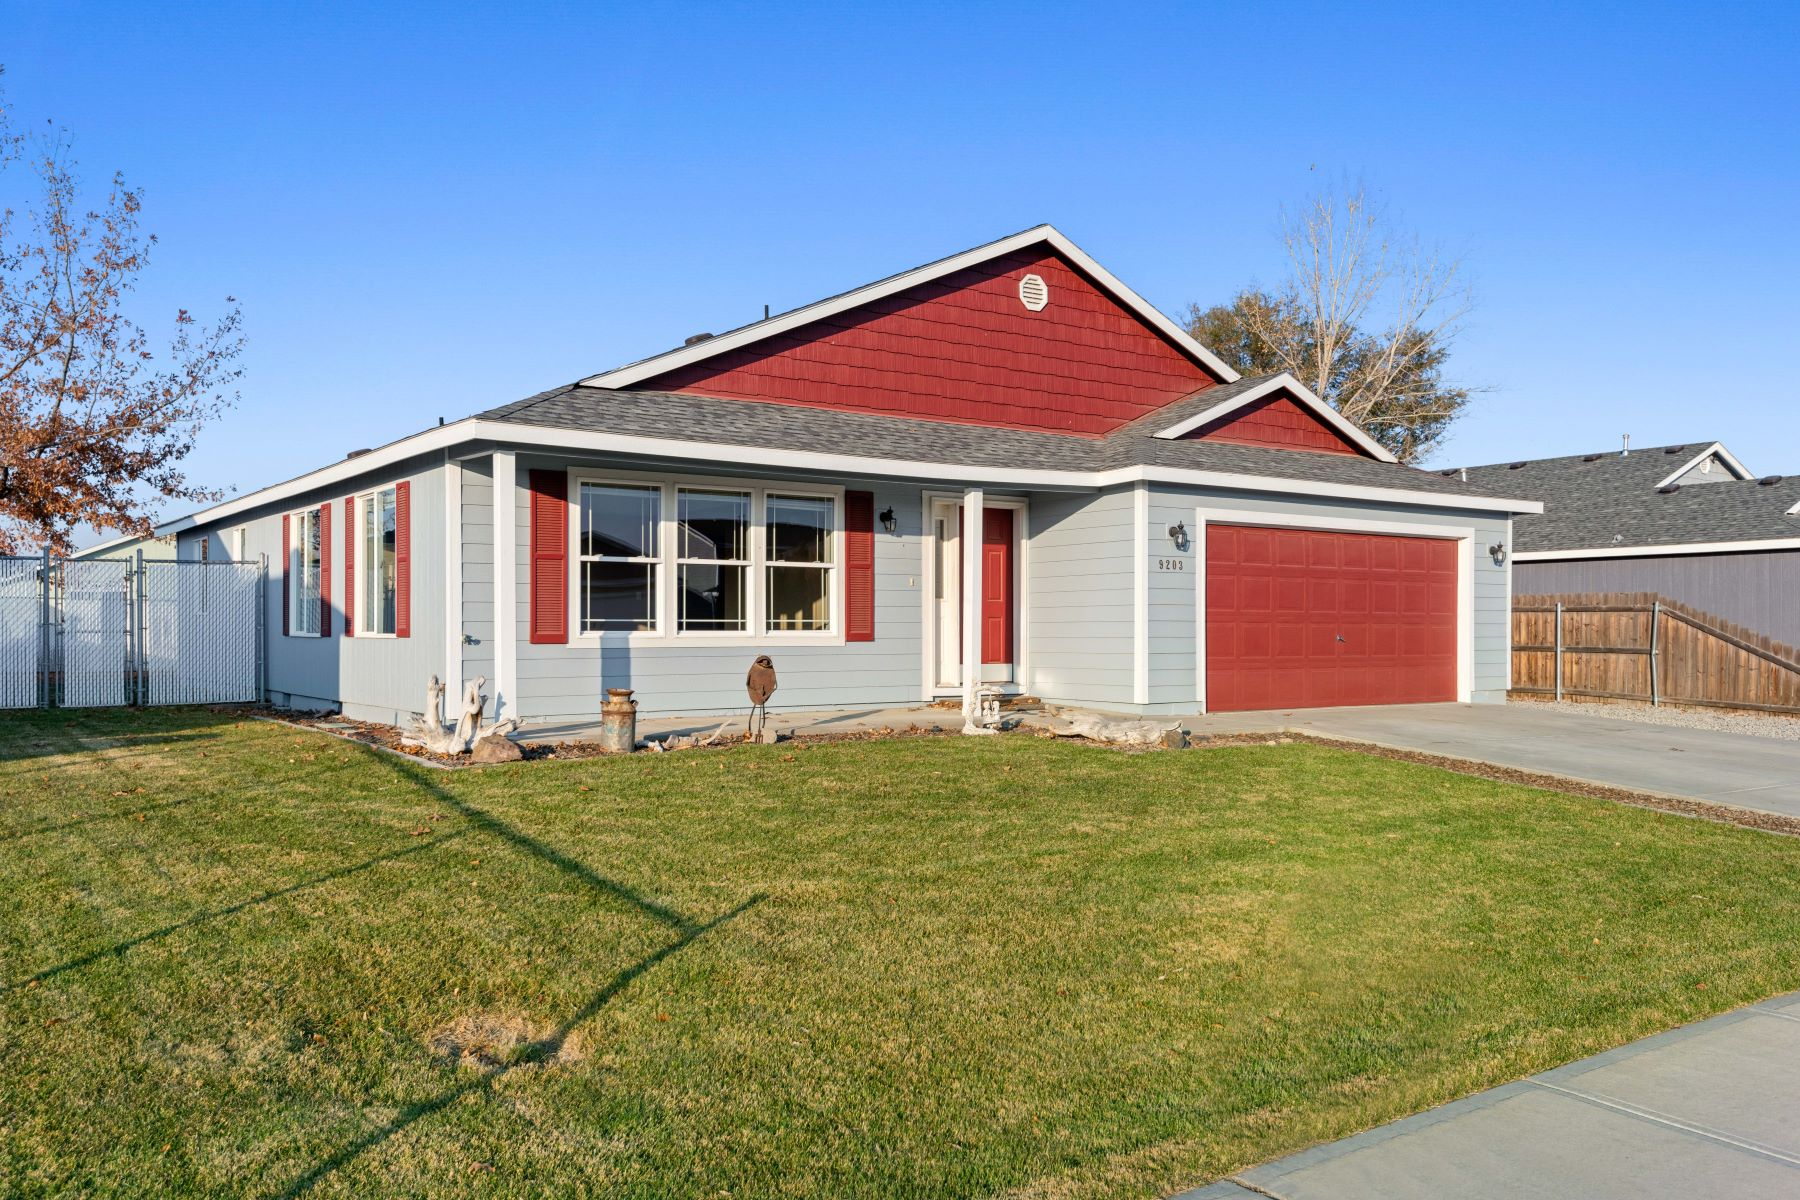 Single Family Homes for Sale at Beautiful Floor Plan With Open Concept Living 9203 Jersey Dr Pasco, Washington 99301 United States